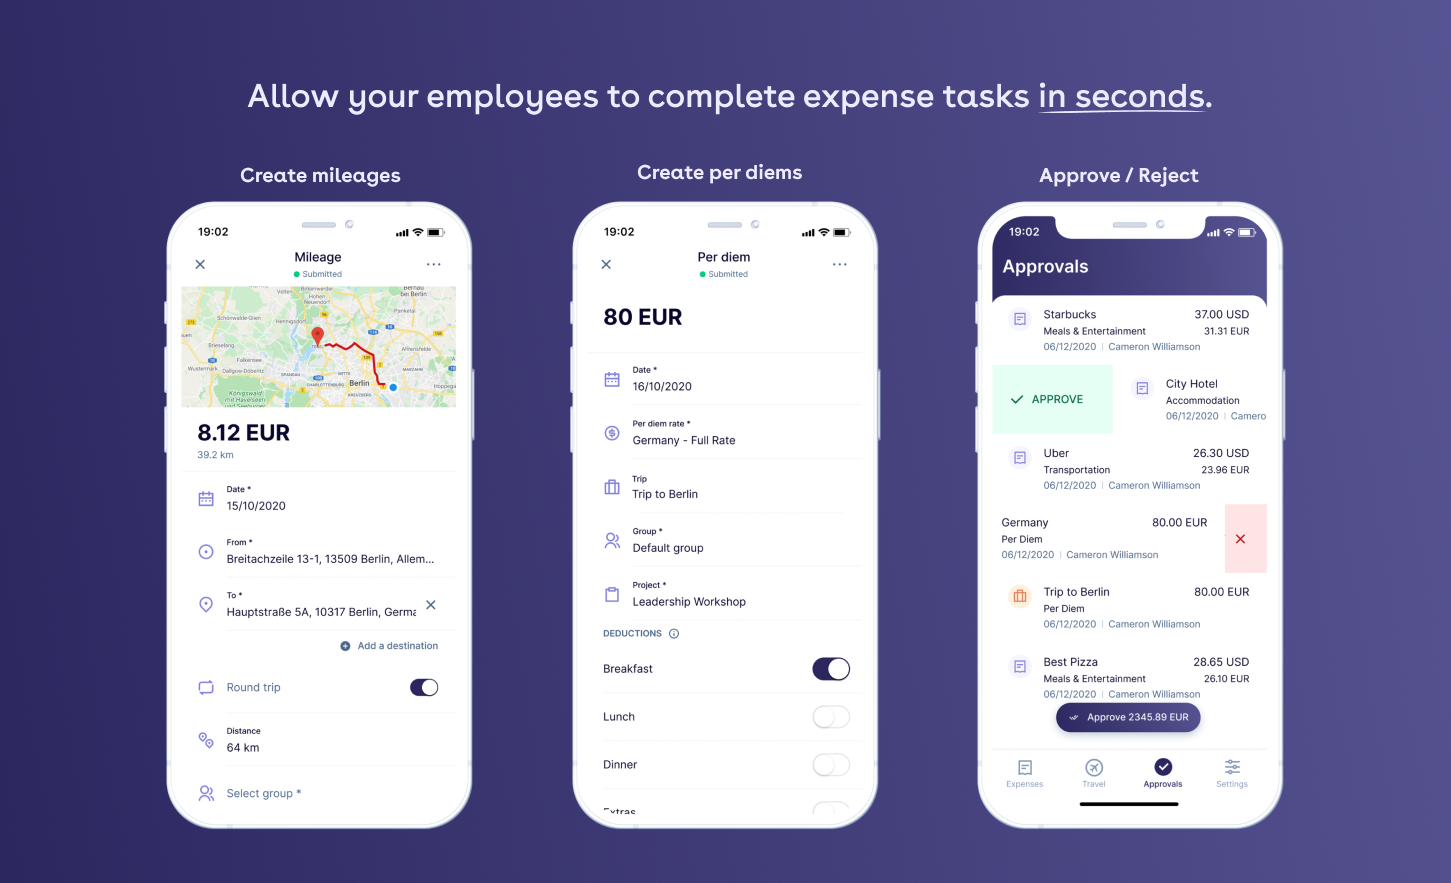 Allow your employees to complete expense tasks in seconds